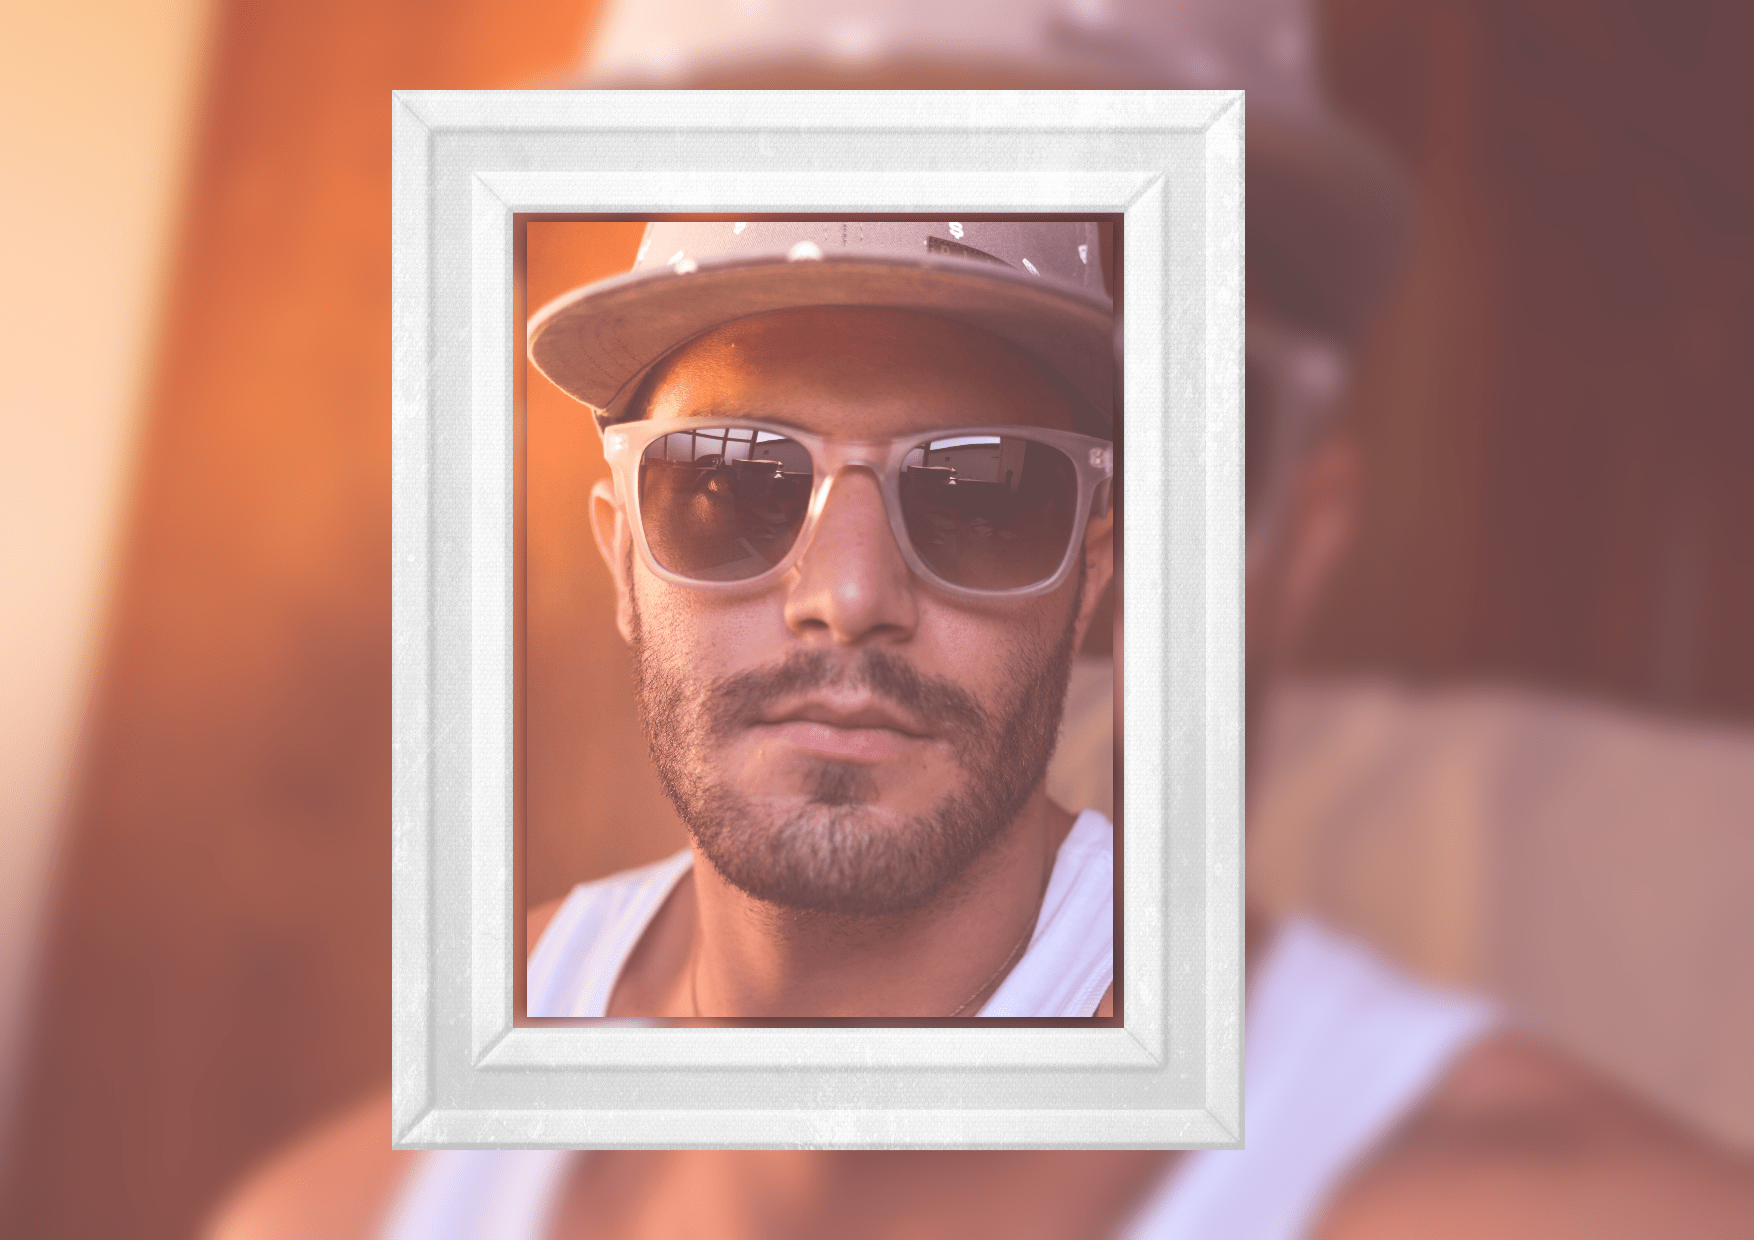 Face,                Nose,                Glasses,                Mockup,                Frame,                Image,                Avatar,                White,                Black,                Red,                 Free Image